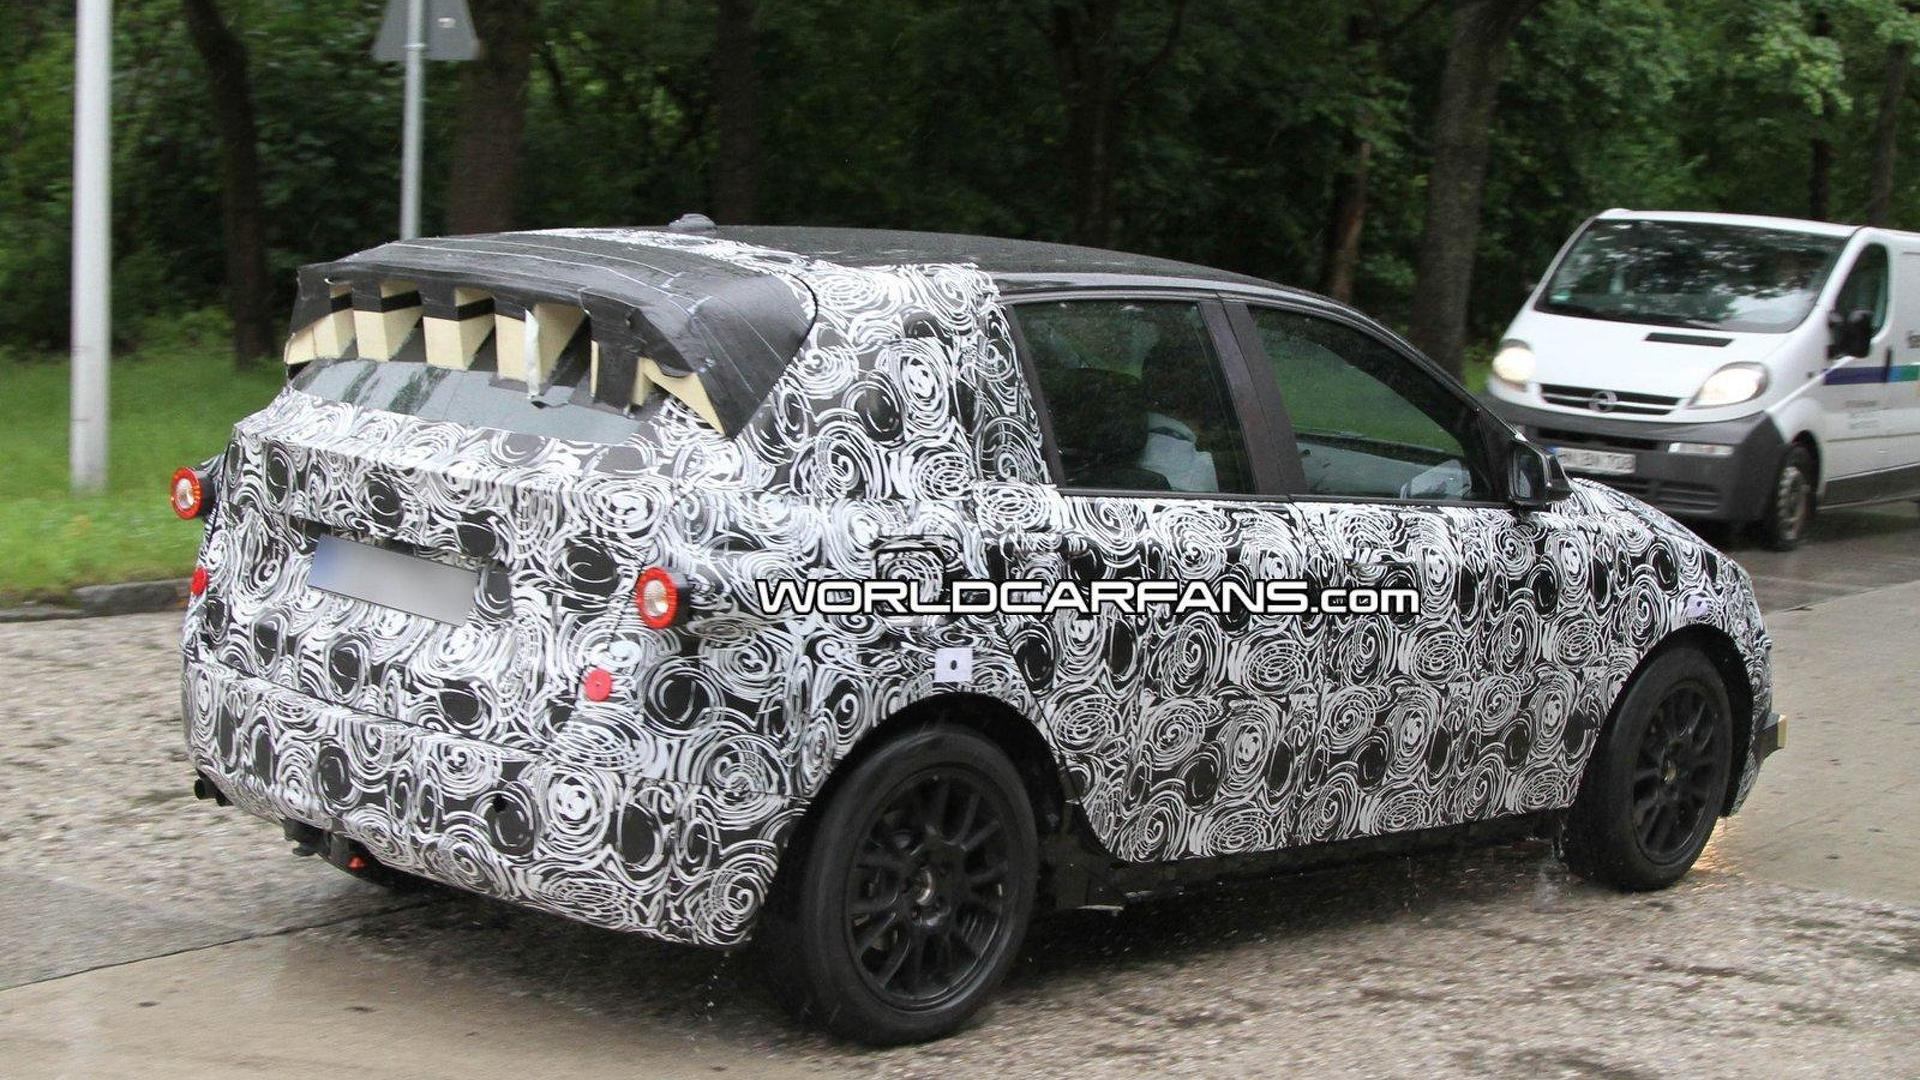 2013 BMW Front-Wheel-Drive prototype spied again